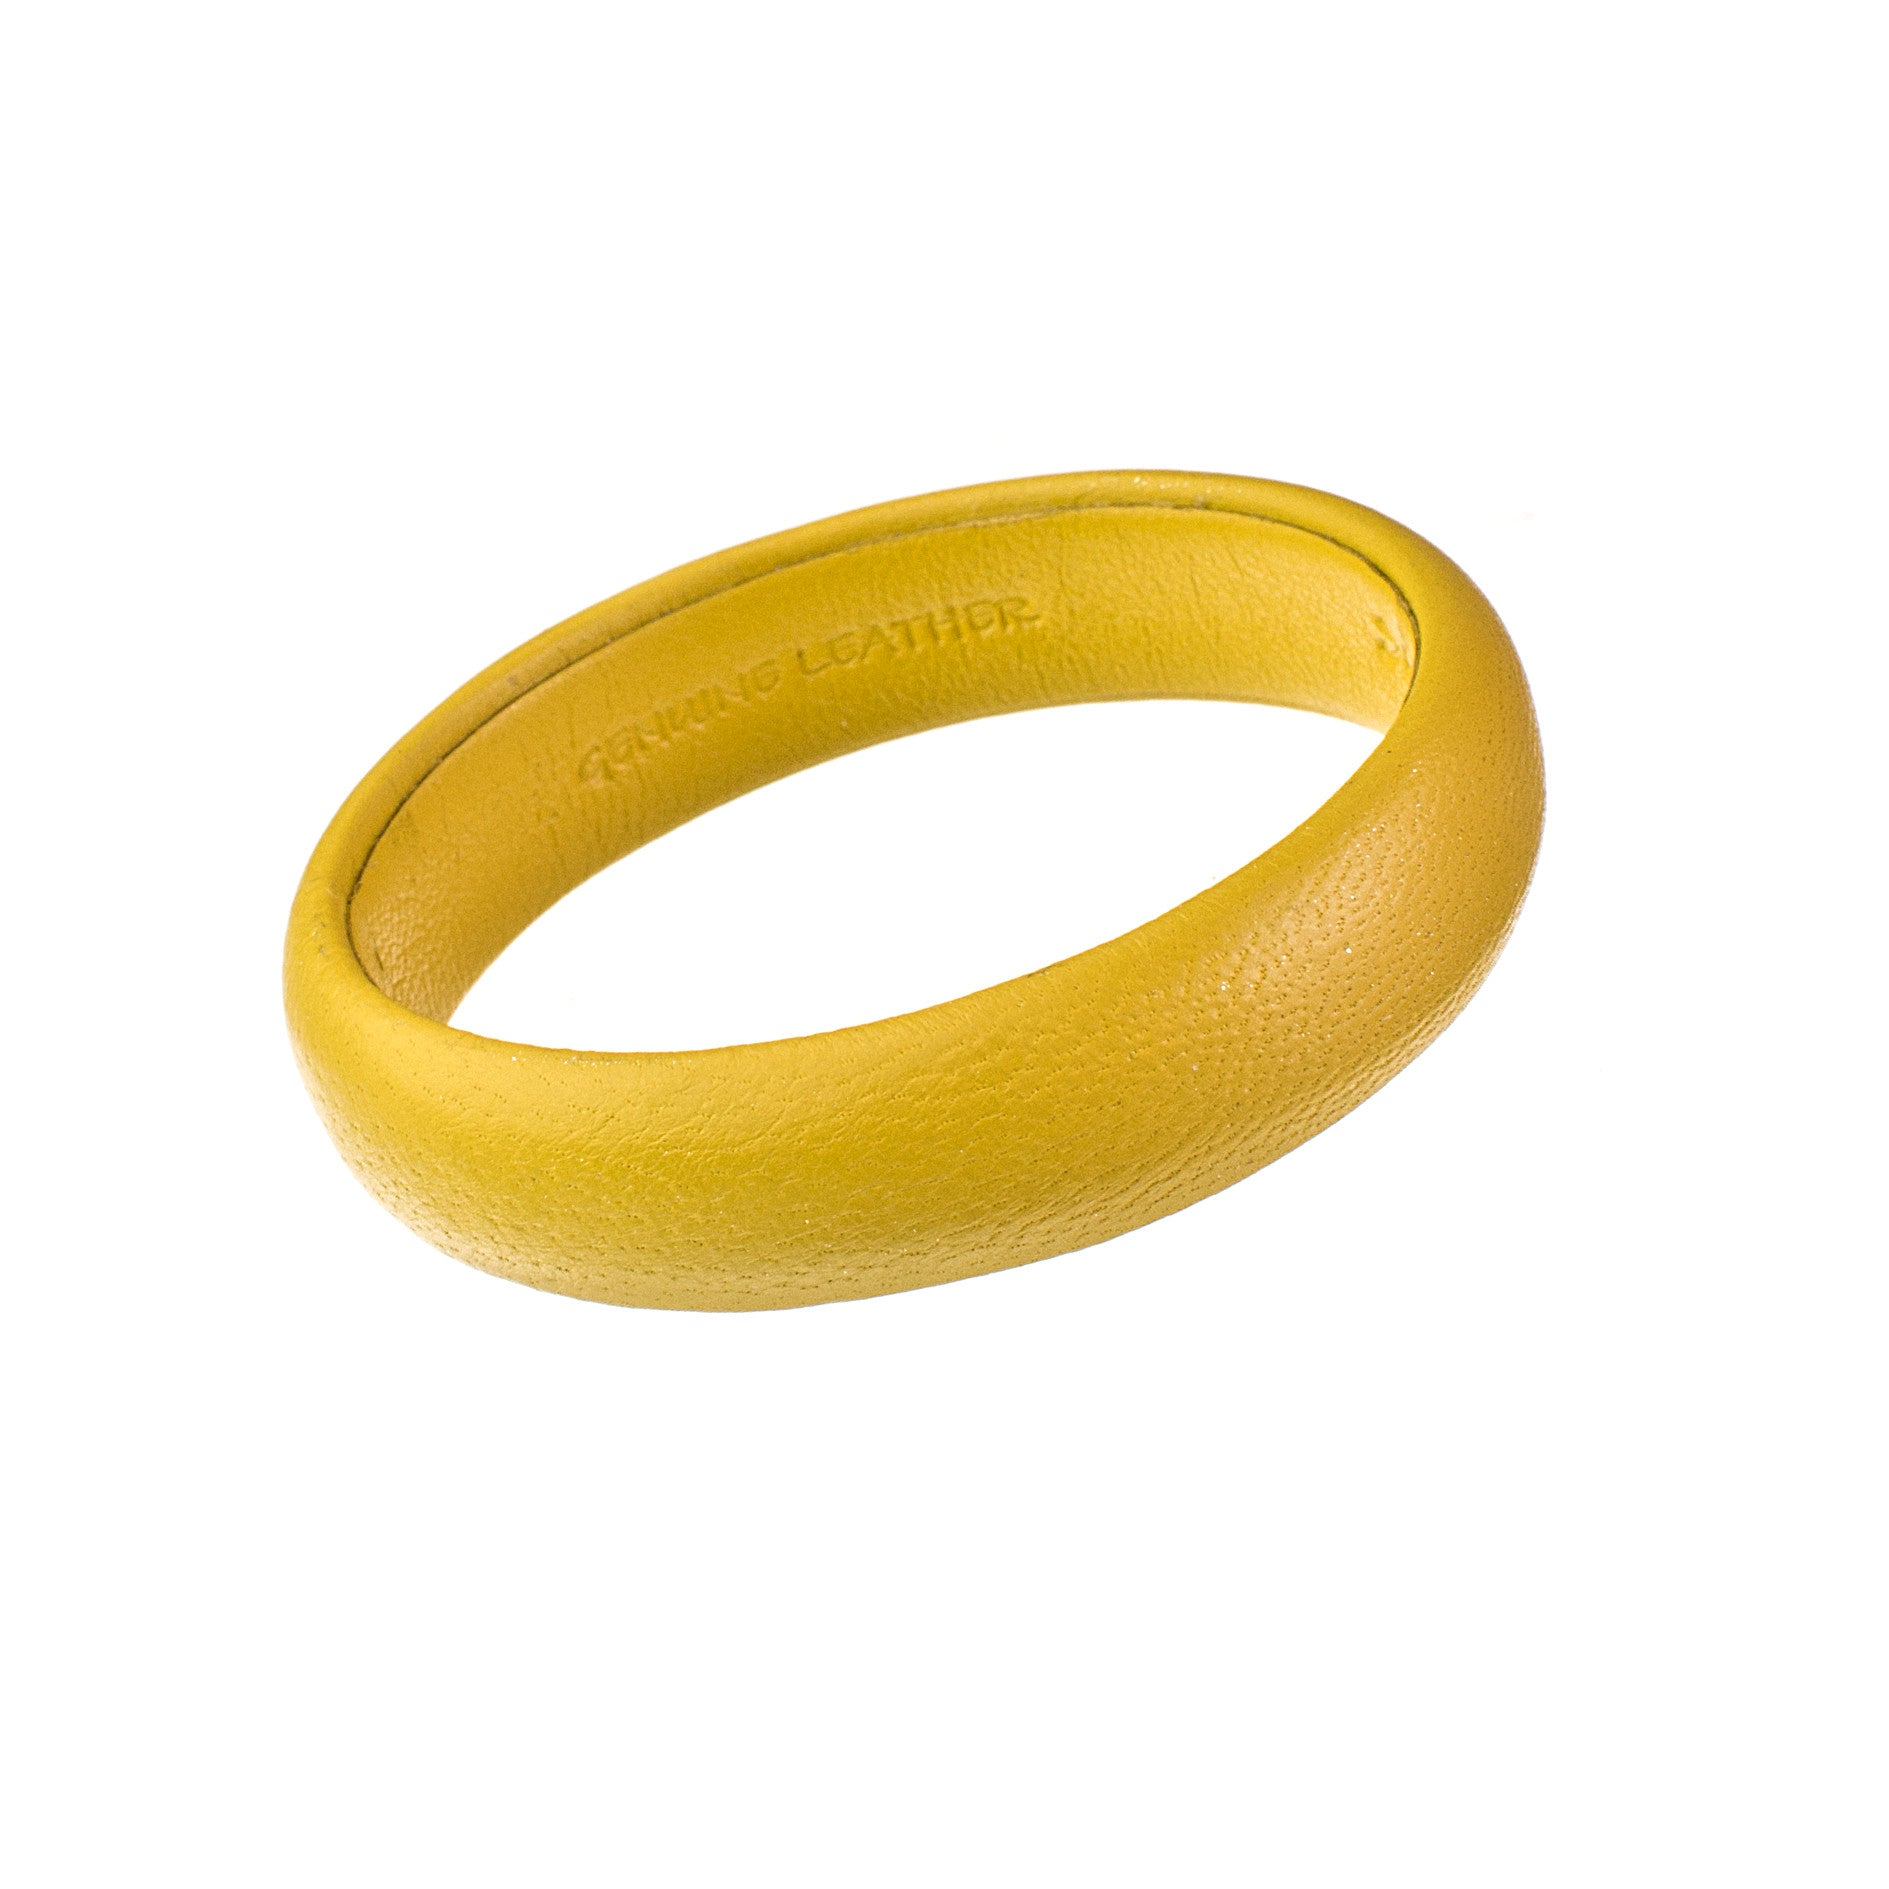 Dark Yellow Mini Leather Bangle Bracelet sd1Twenty5 single